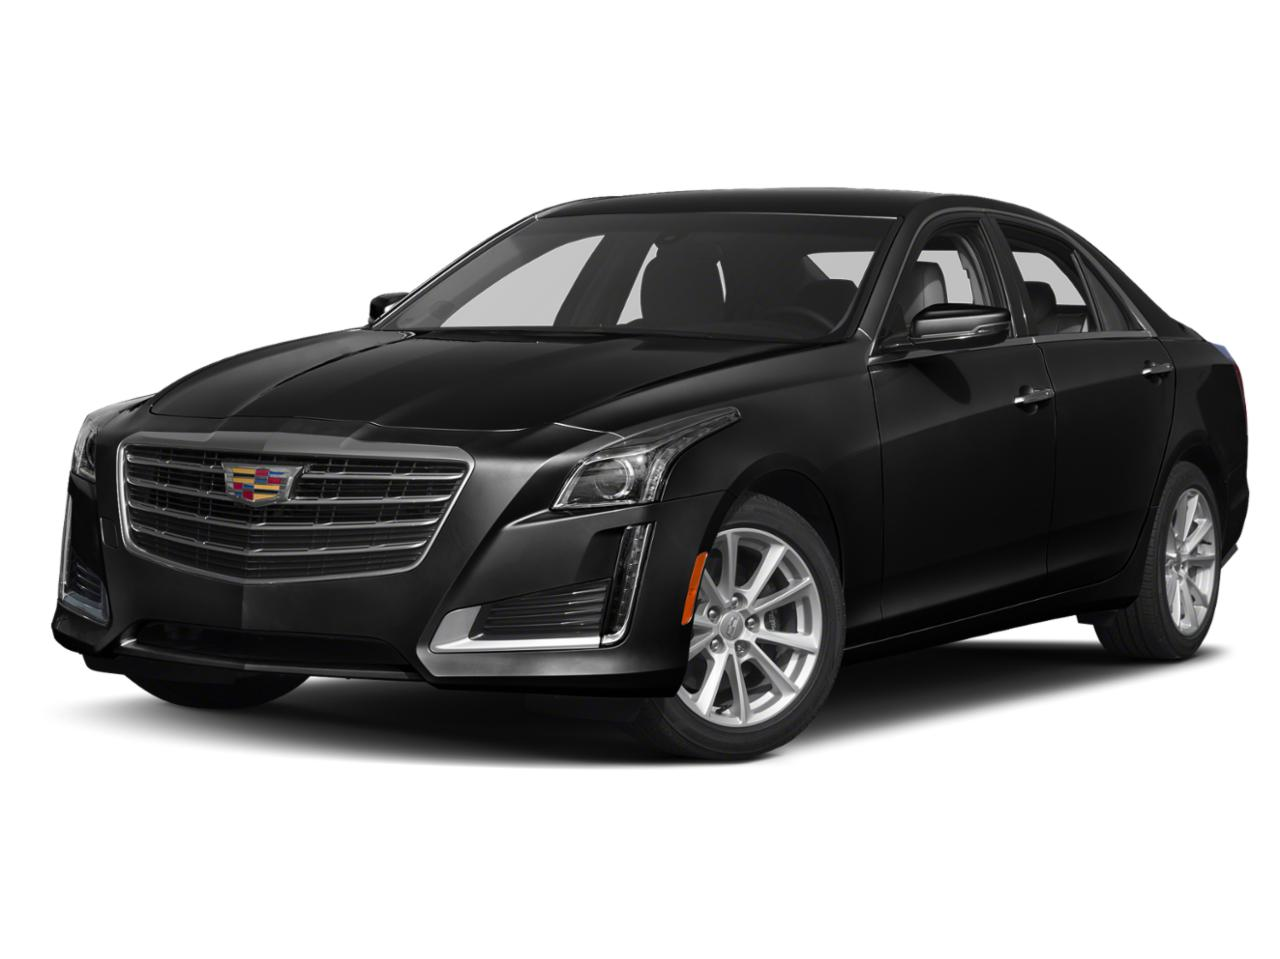 2019 Cadillac CTS Sedan Vehicle Photo in Appleton, WI 54913